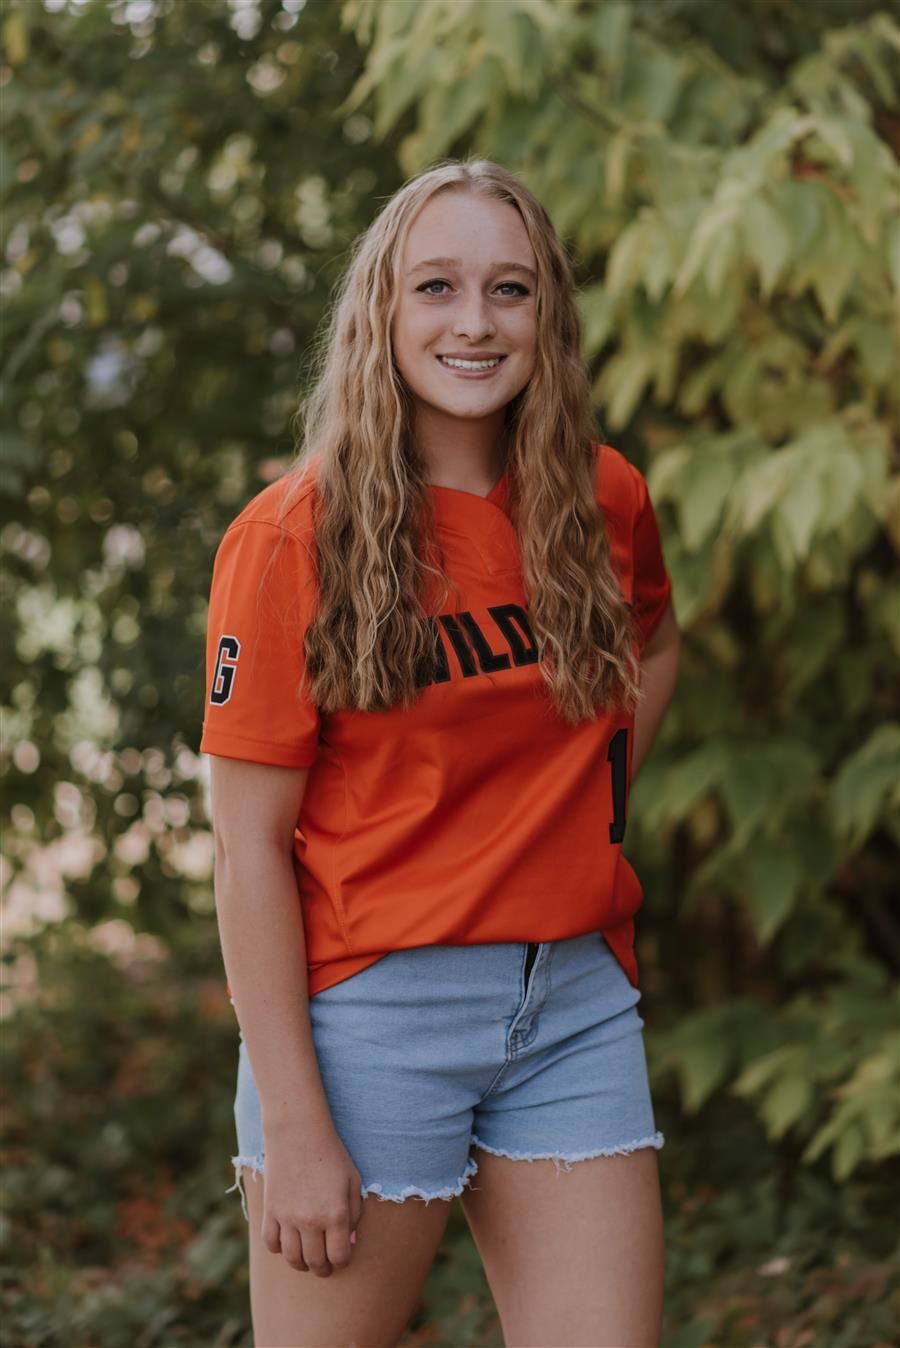 D6 Athlete of the Week Emma Johnston Greeley Central High School